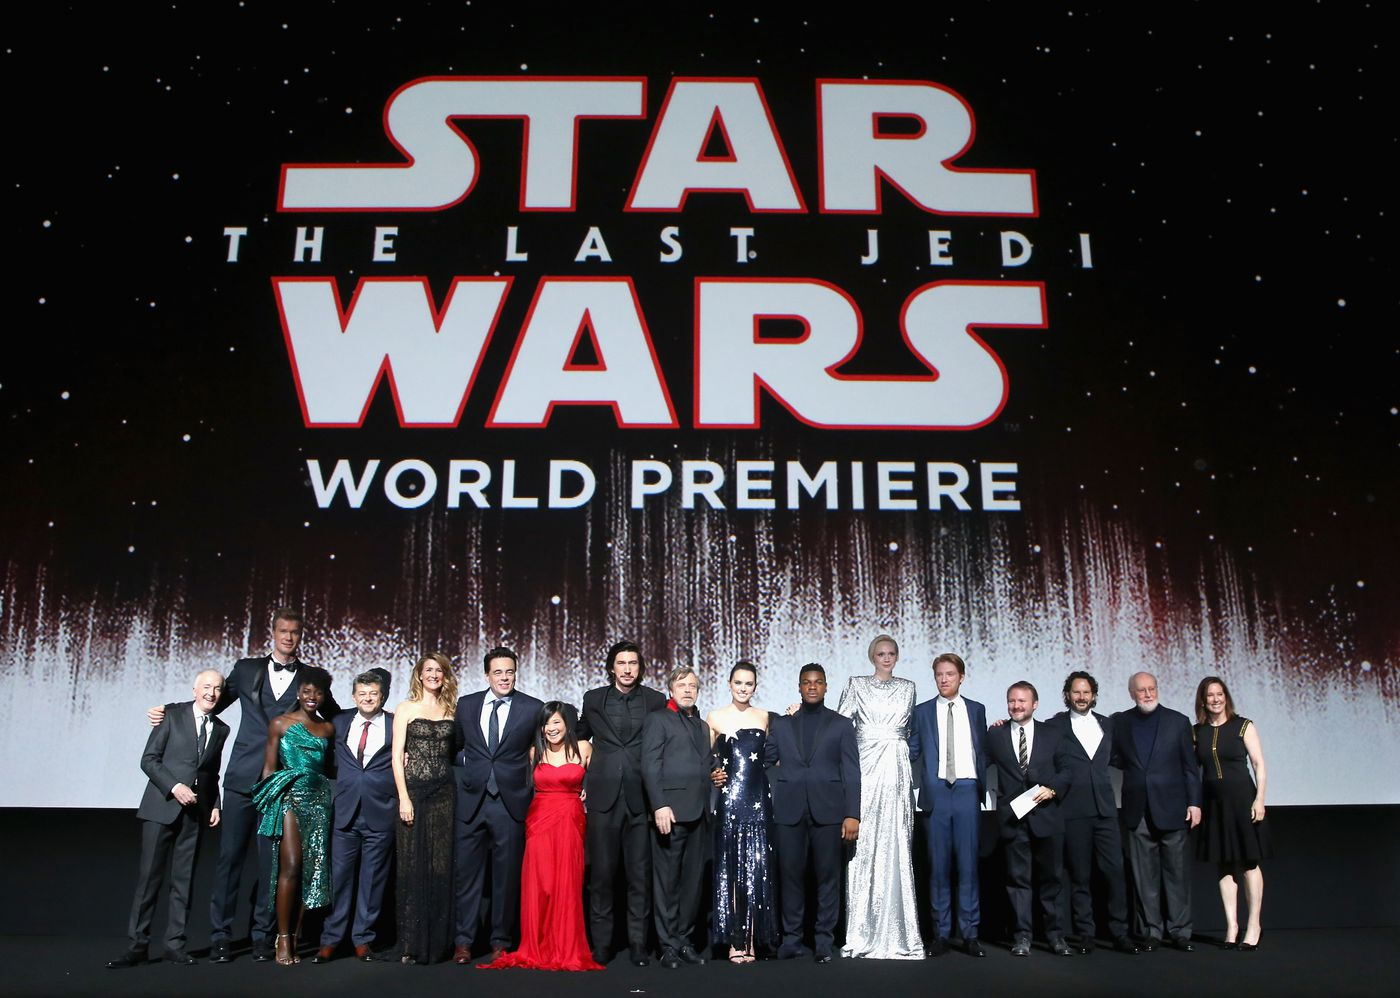 Interview: The Last Jedi's director and producer on fan